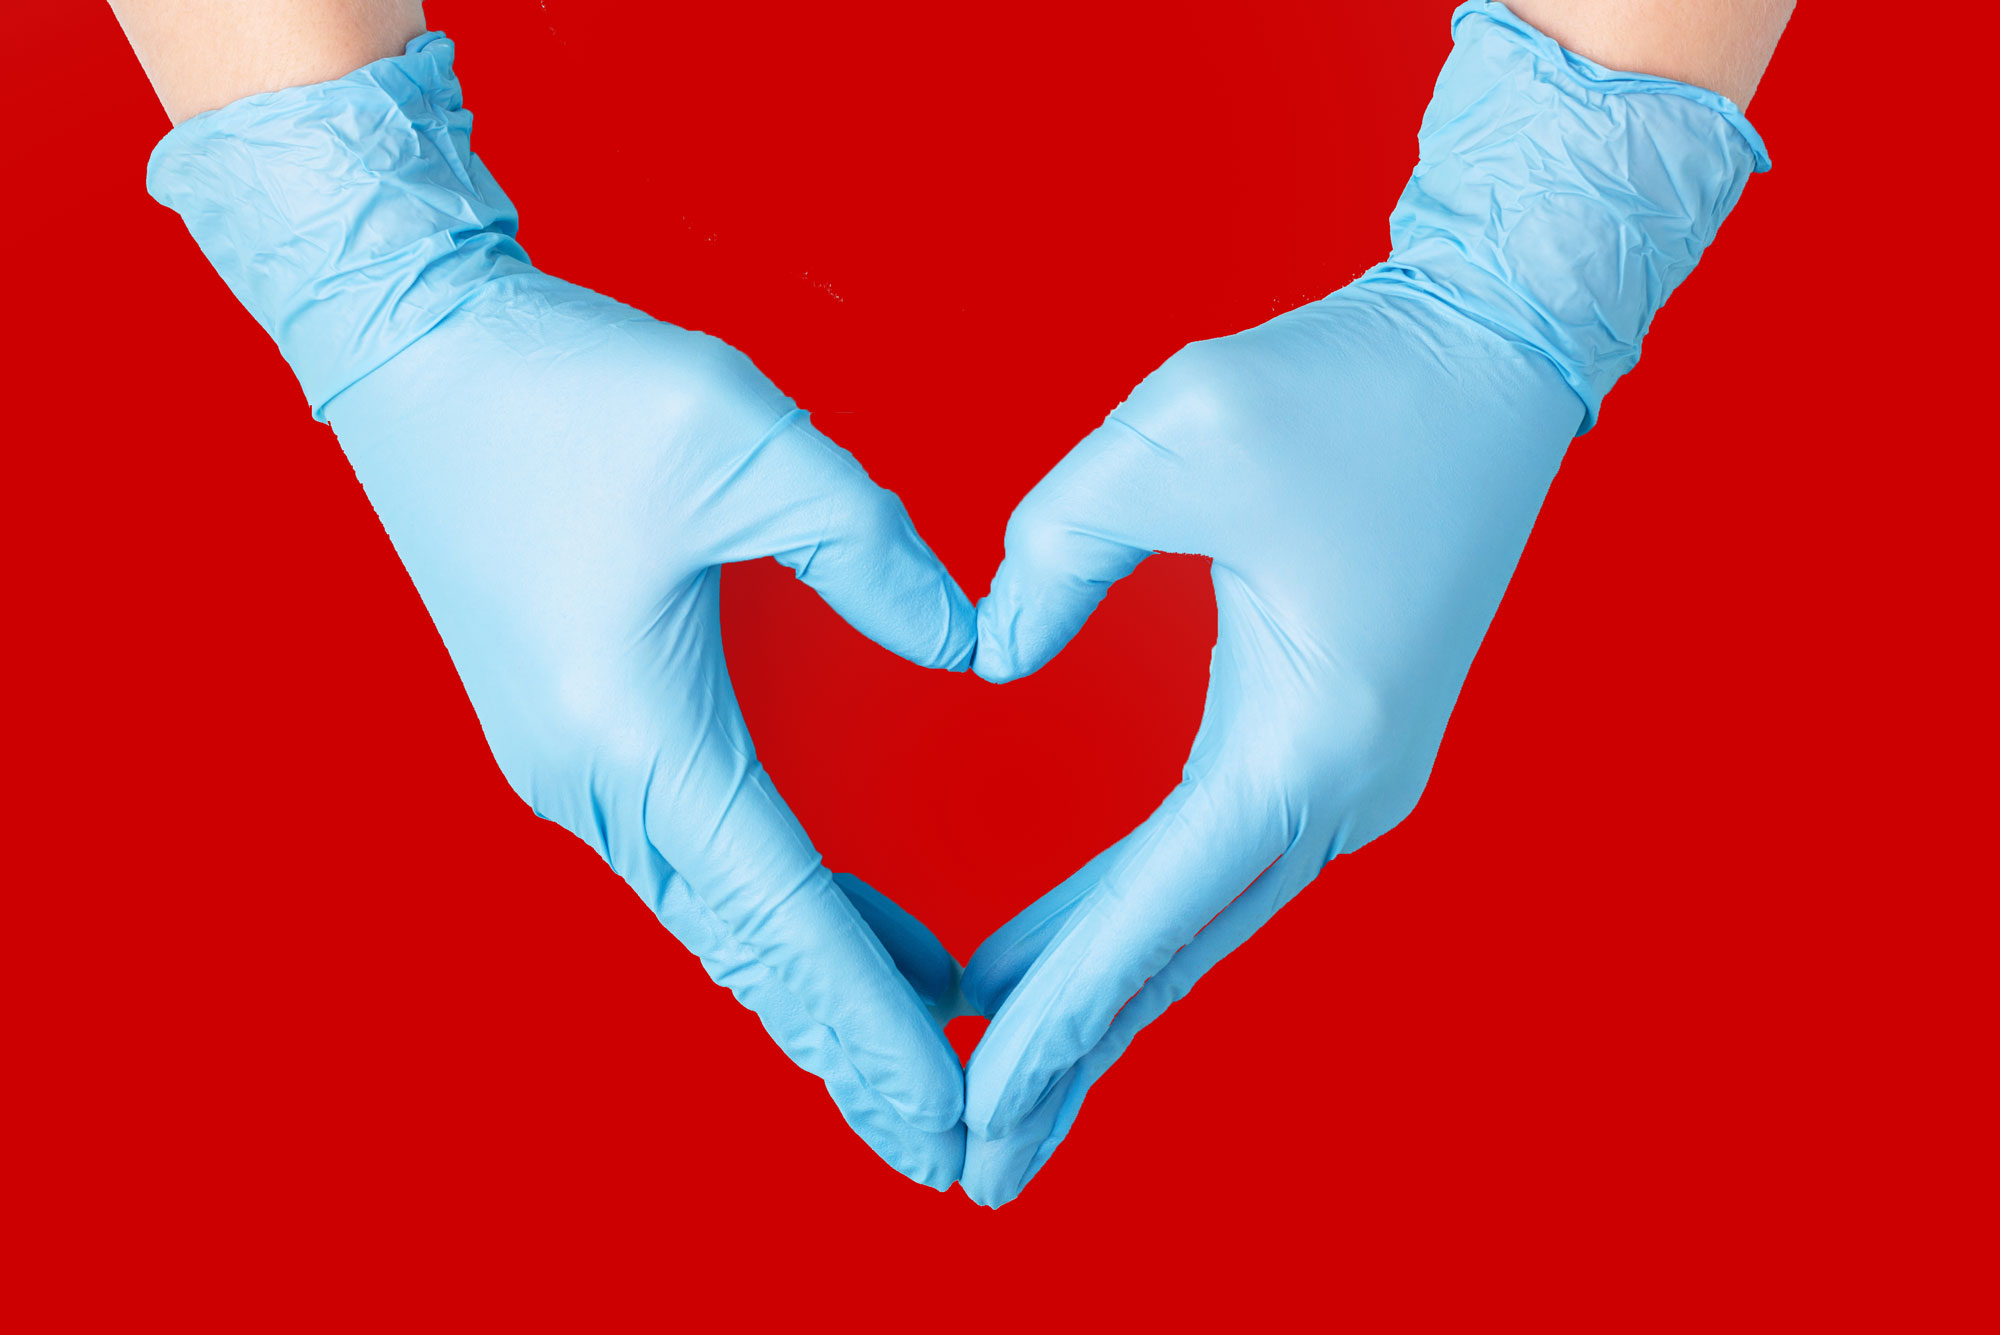 A pair of gloved hands making a heart over a red background